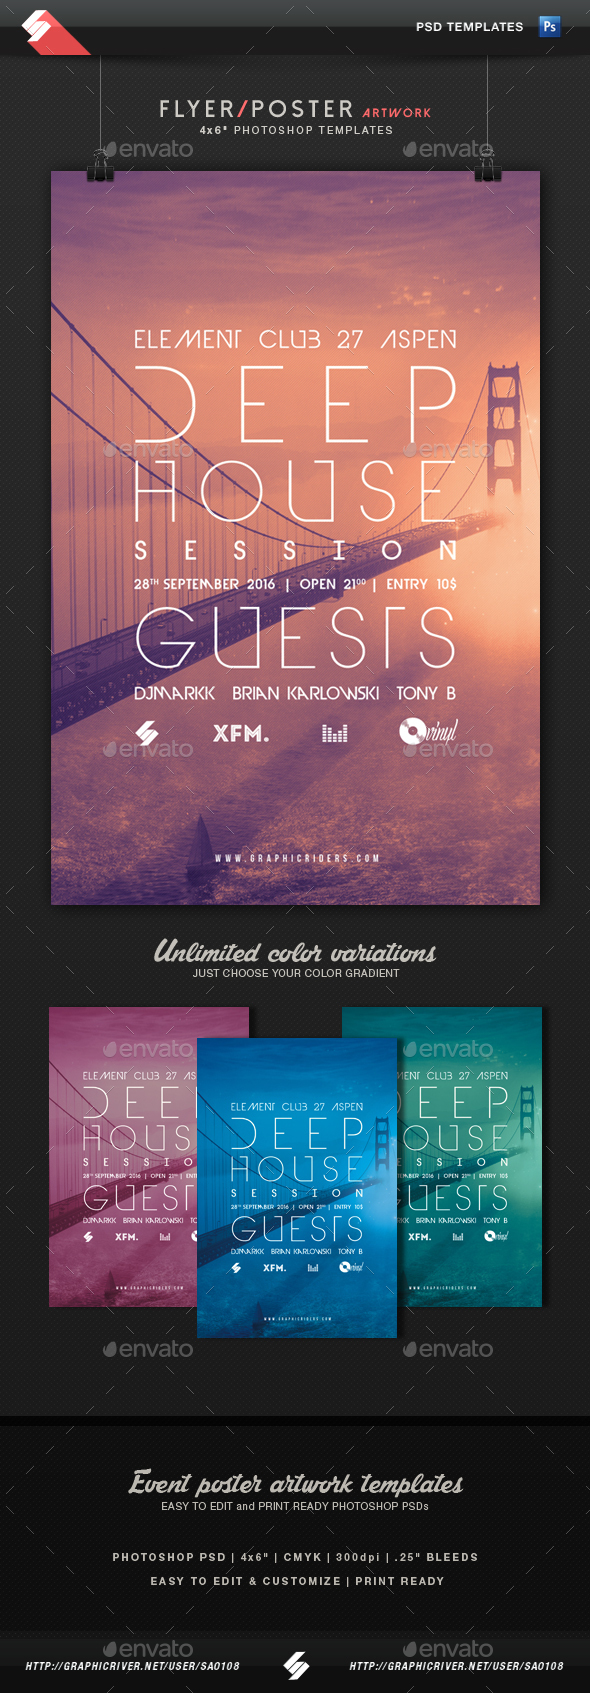 Deep House Session 6 - Party Flyer Template - Clubs & Parties Events